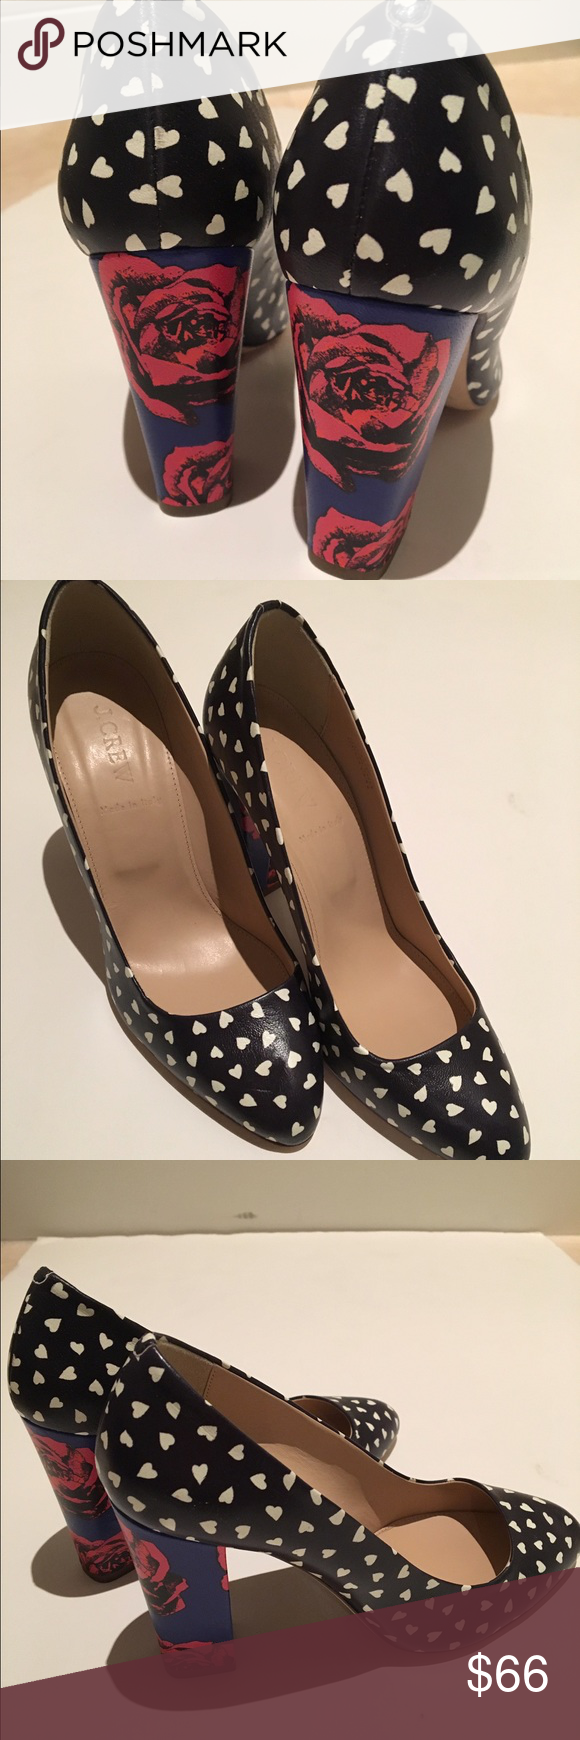 JCrew Roxie print leather pumps size 7 Get your feet in A LOVING spirit.  Sexy yet polished, this high-heeled, rounded-toe Roxie pump is the shoe that has launched a thousand amazing outfits—and counting.    Leather lining and sole. Made in Italy. Black with white hearts adorn the front, while red and purple roses are the surprise heel that gives a romantic feel.  Stylish and fun. Practically new.  Impeccable condition. J.Crew Size 7  Make a simple outfit pop in these pumps J Crew Shoes…